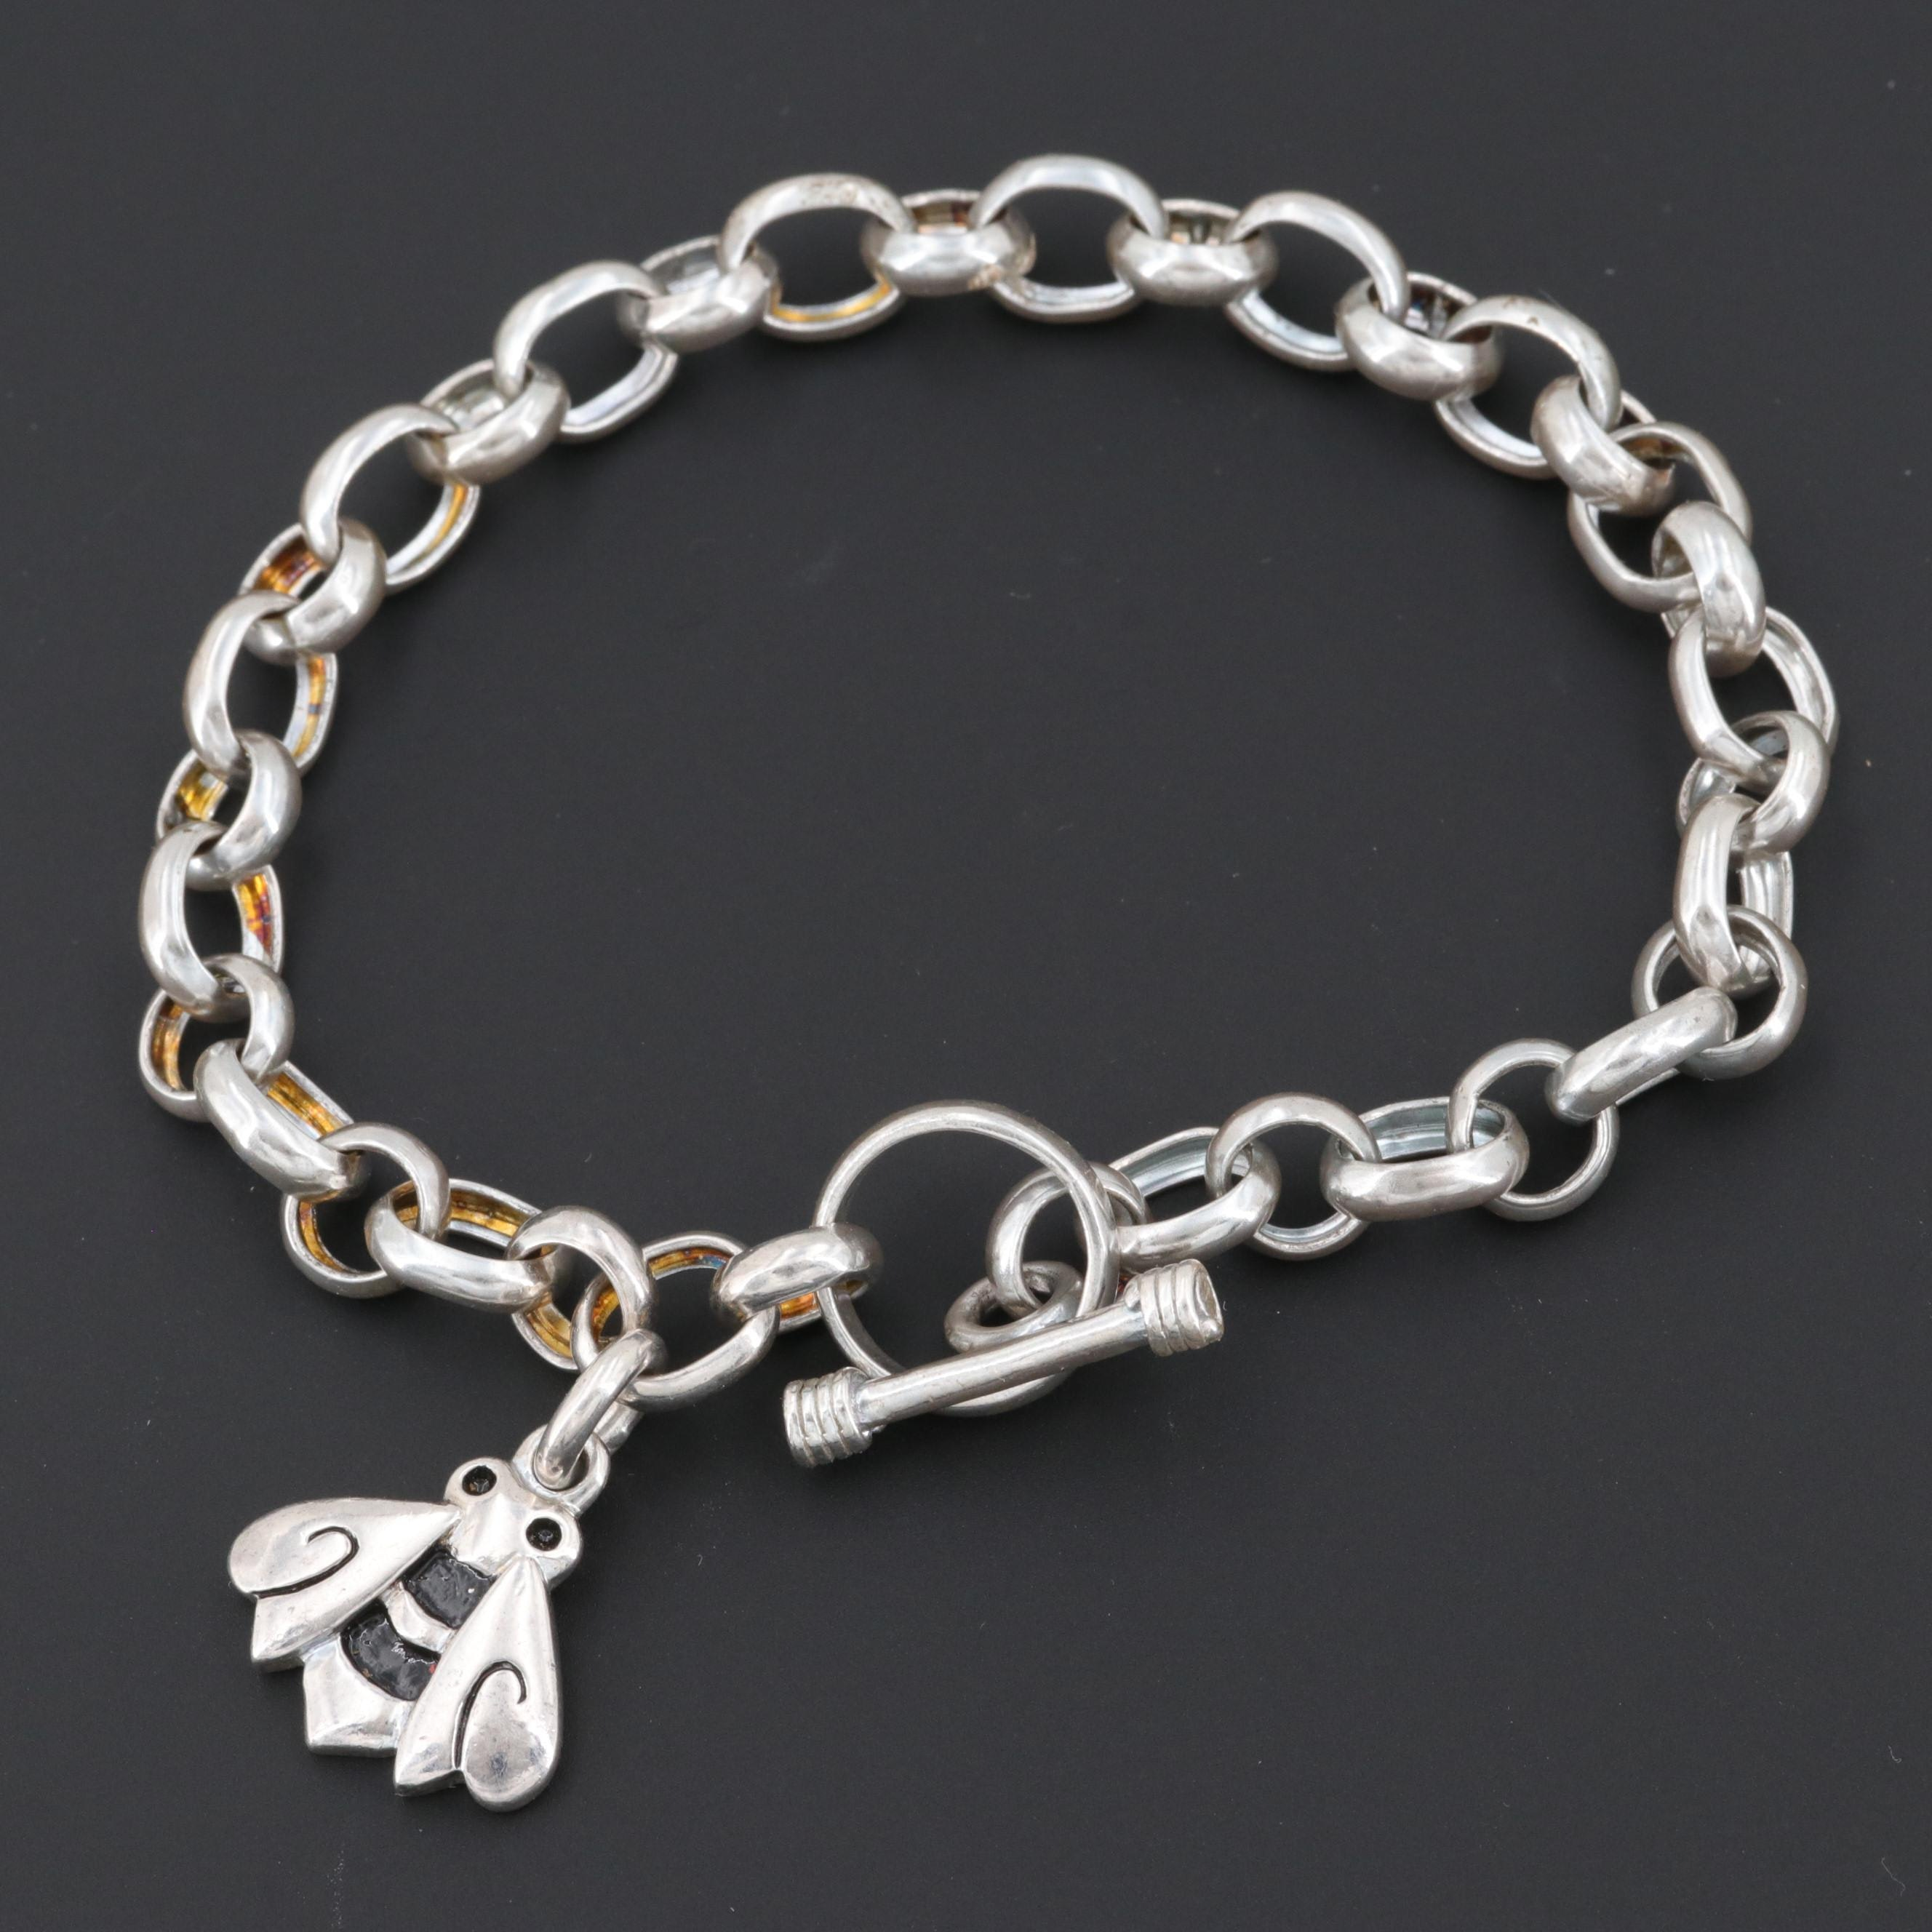 Sterling Silver Bracelet with Enameled Bee Charm